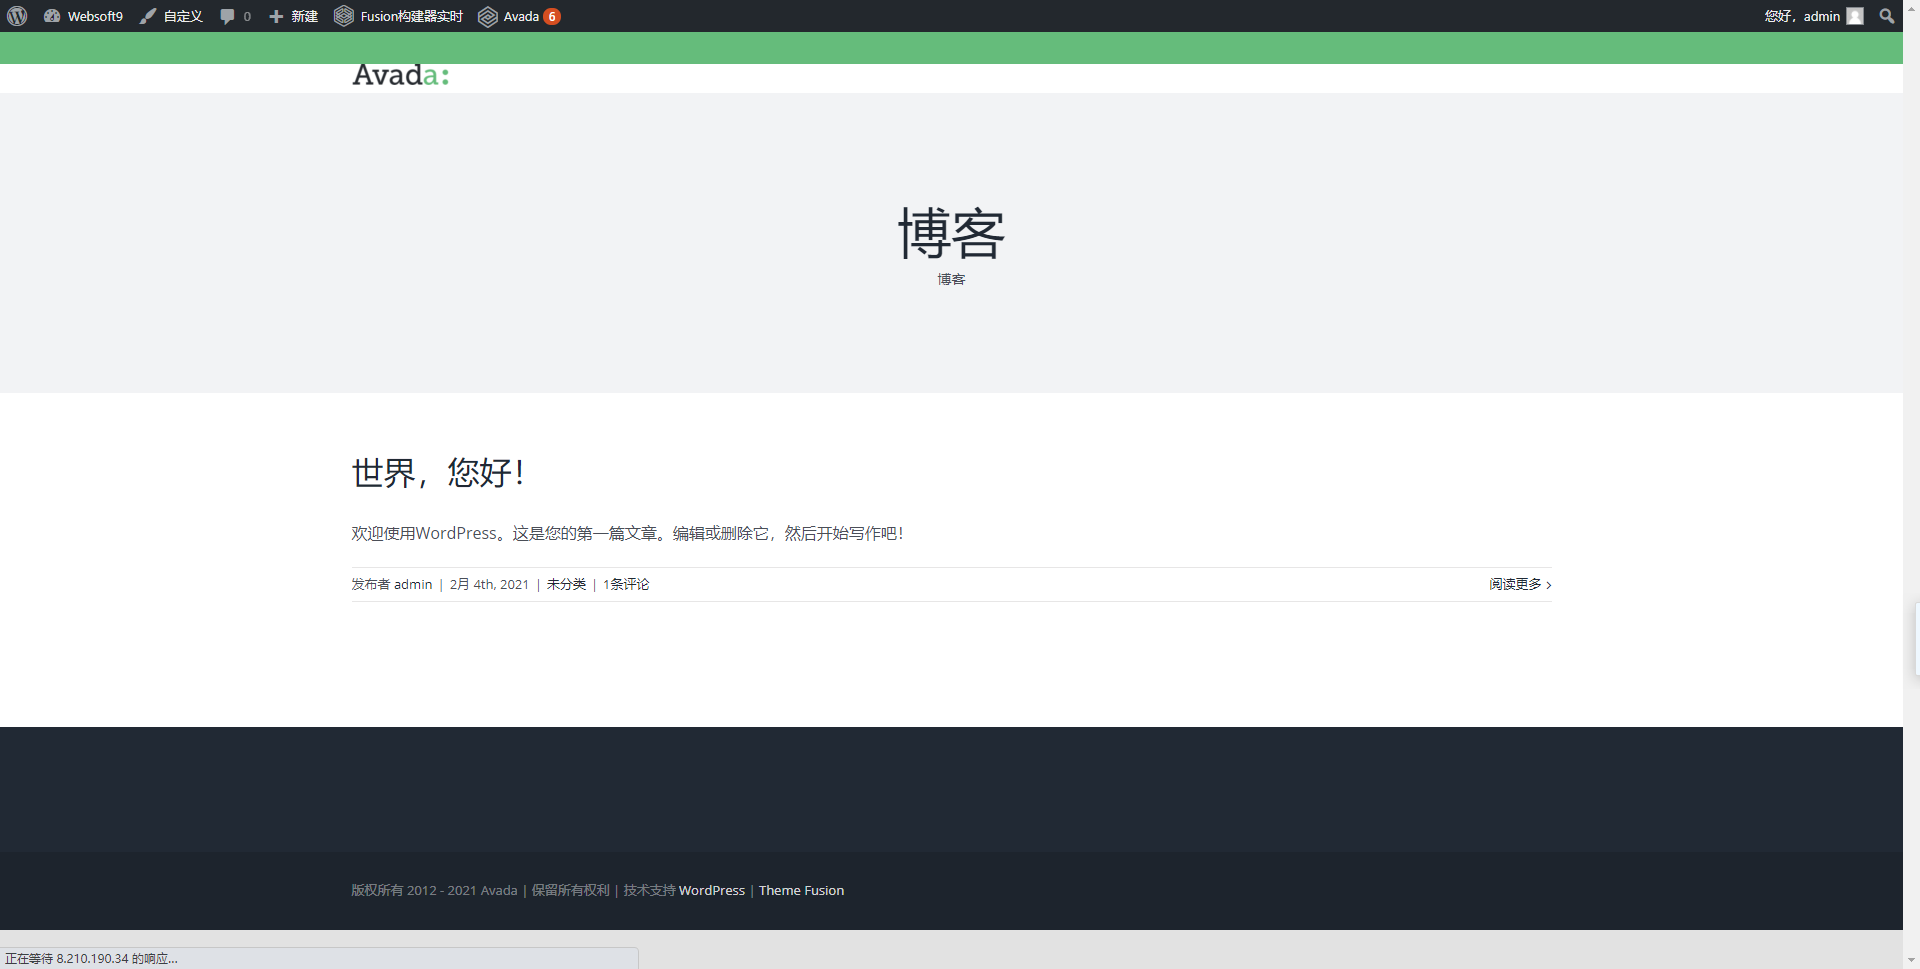 WordPress 主页